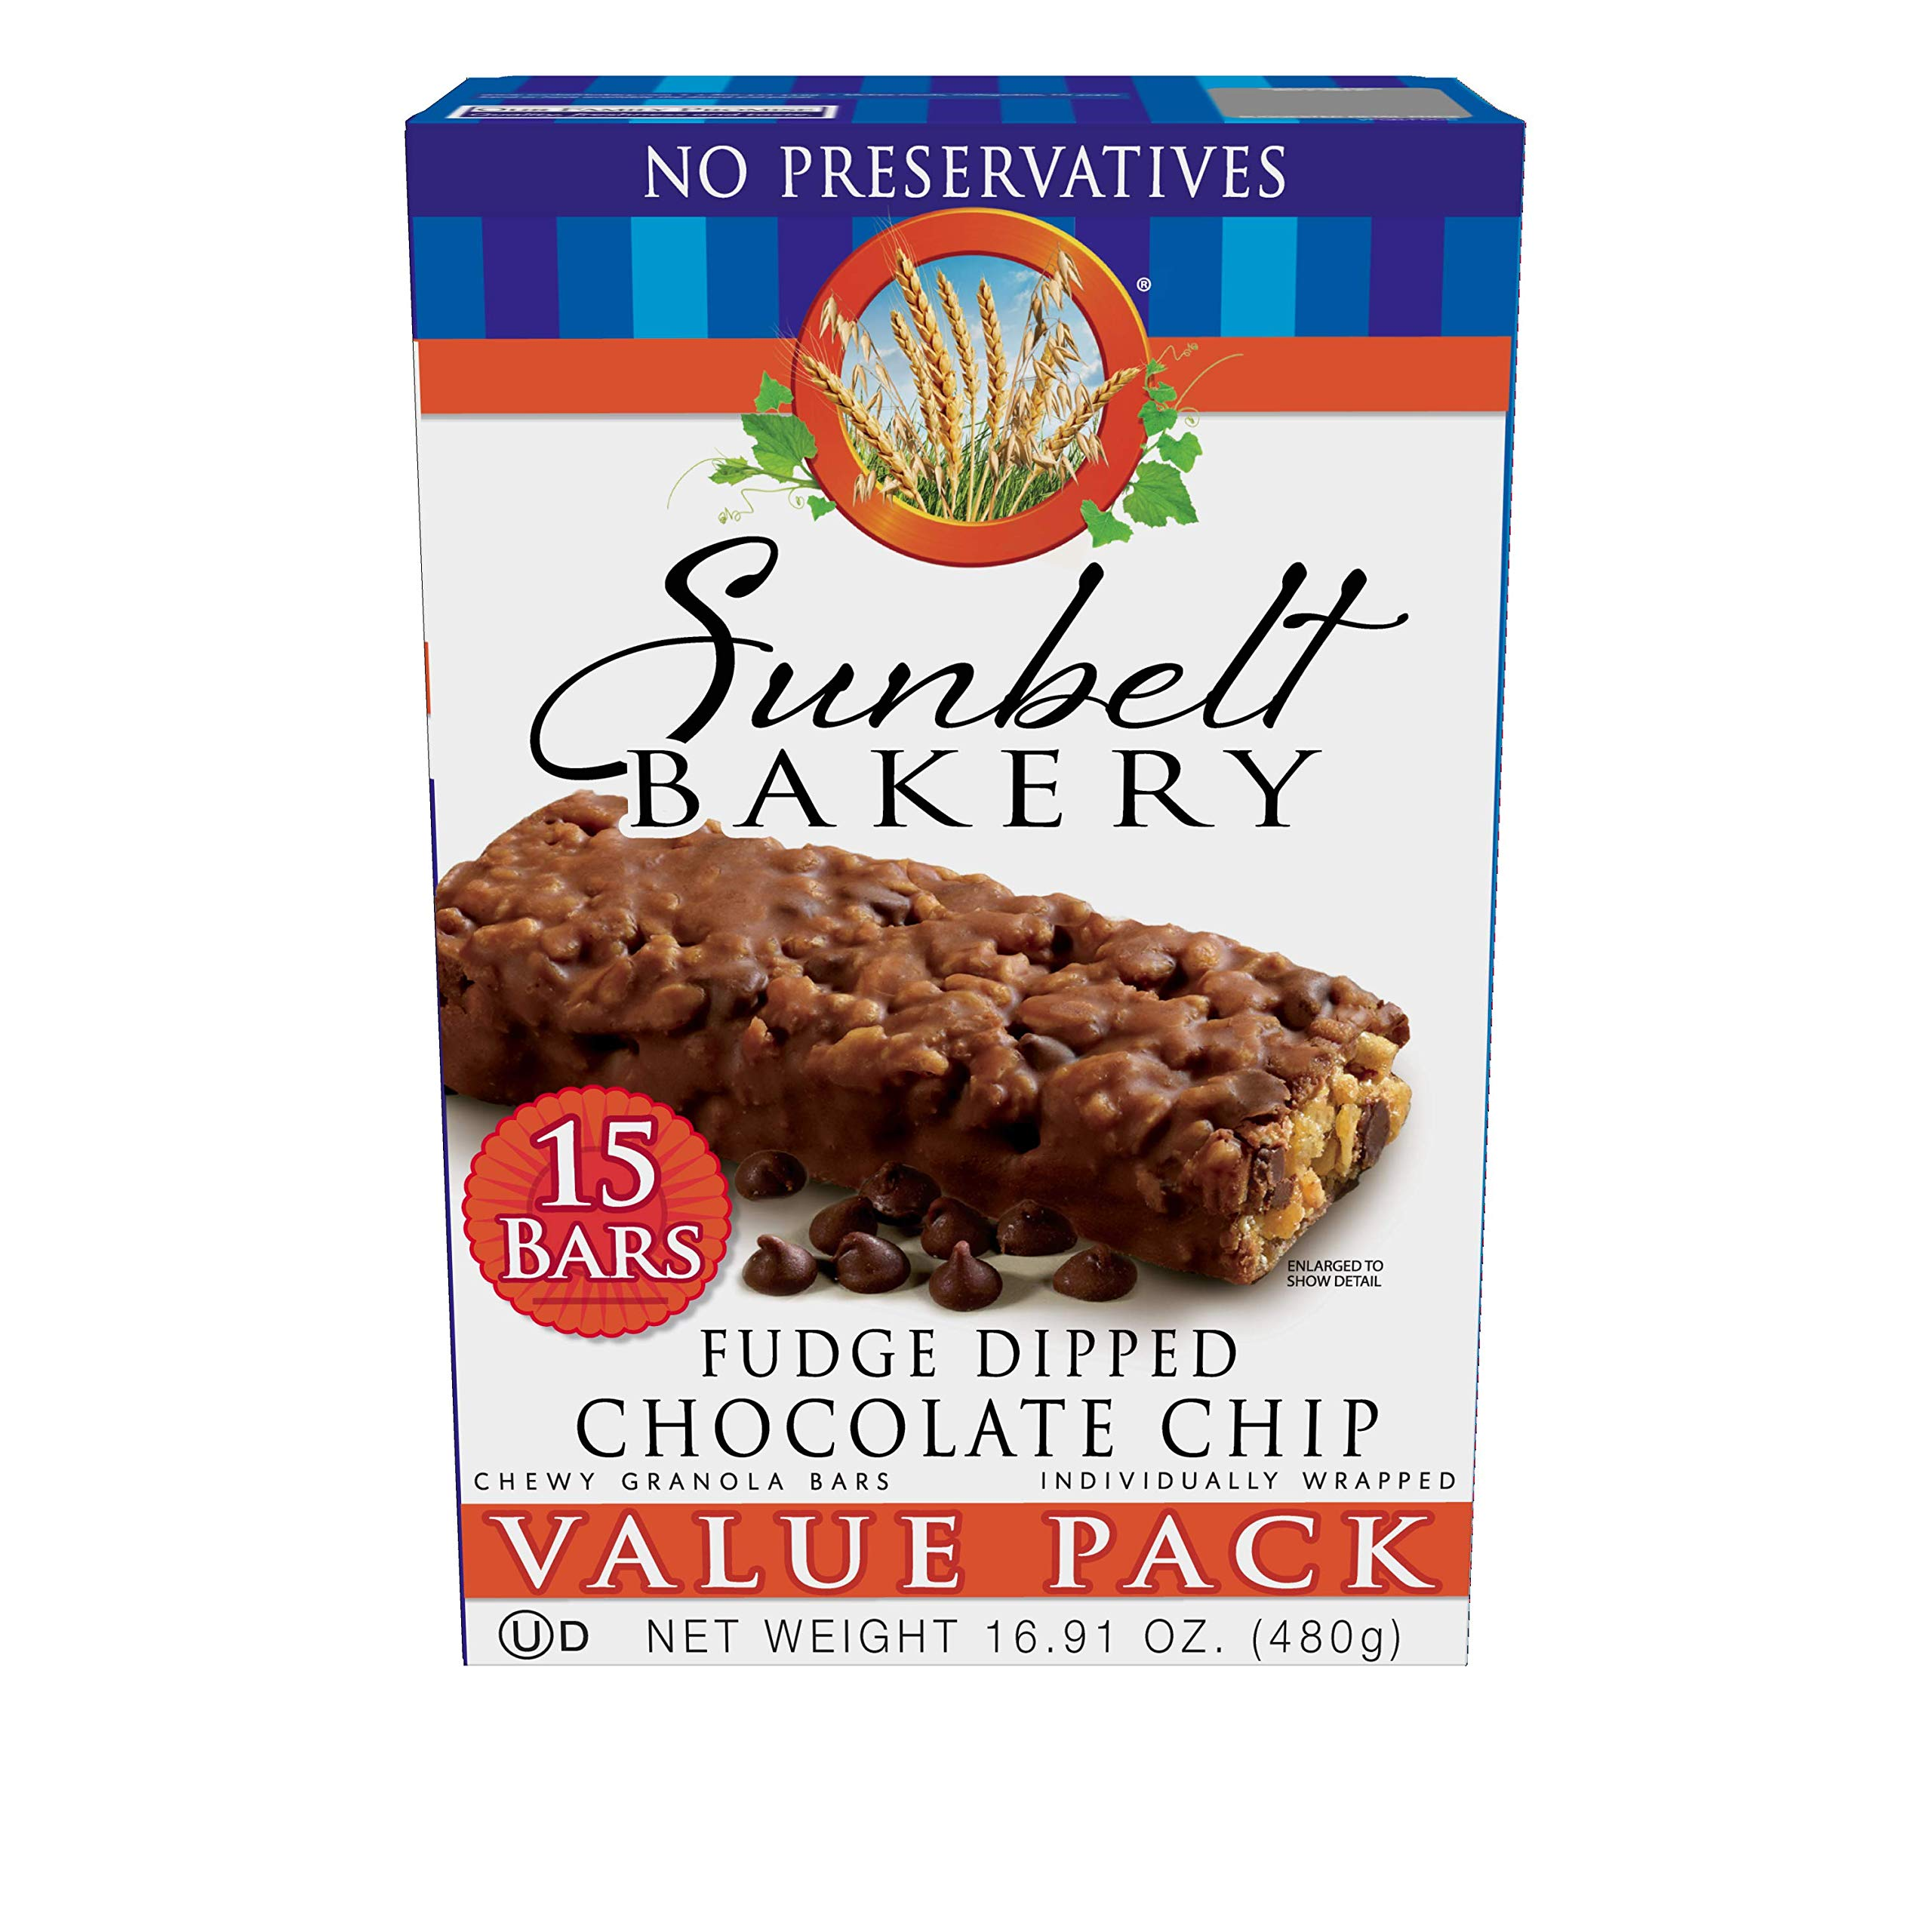 Sunbelt Bakery Fudge Dipped Chocolate Chip Granola Bars, 1.2 oz Bars, 30 Count